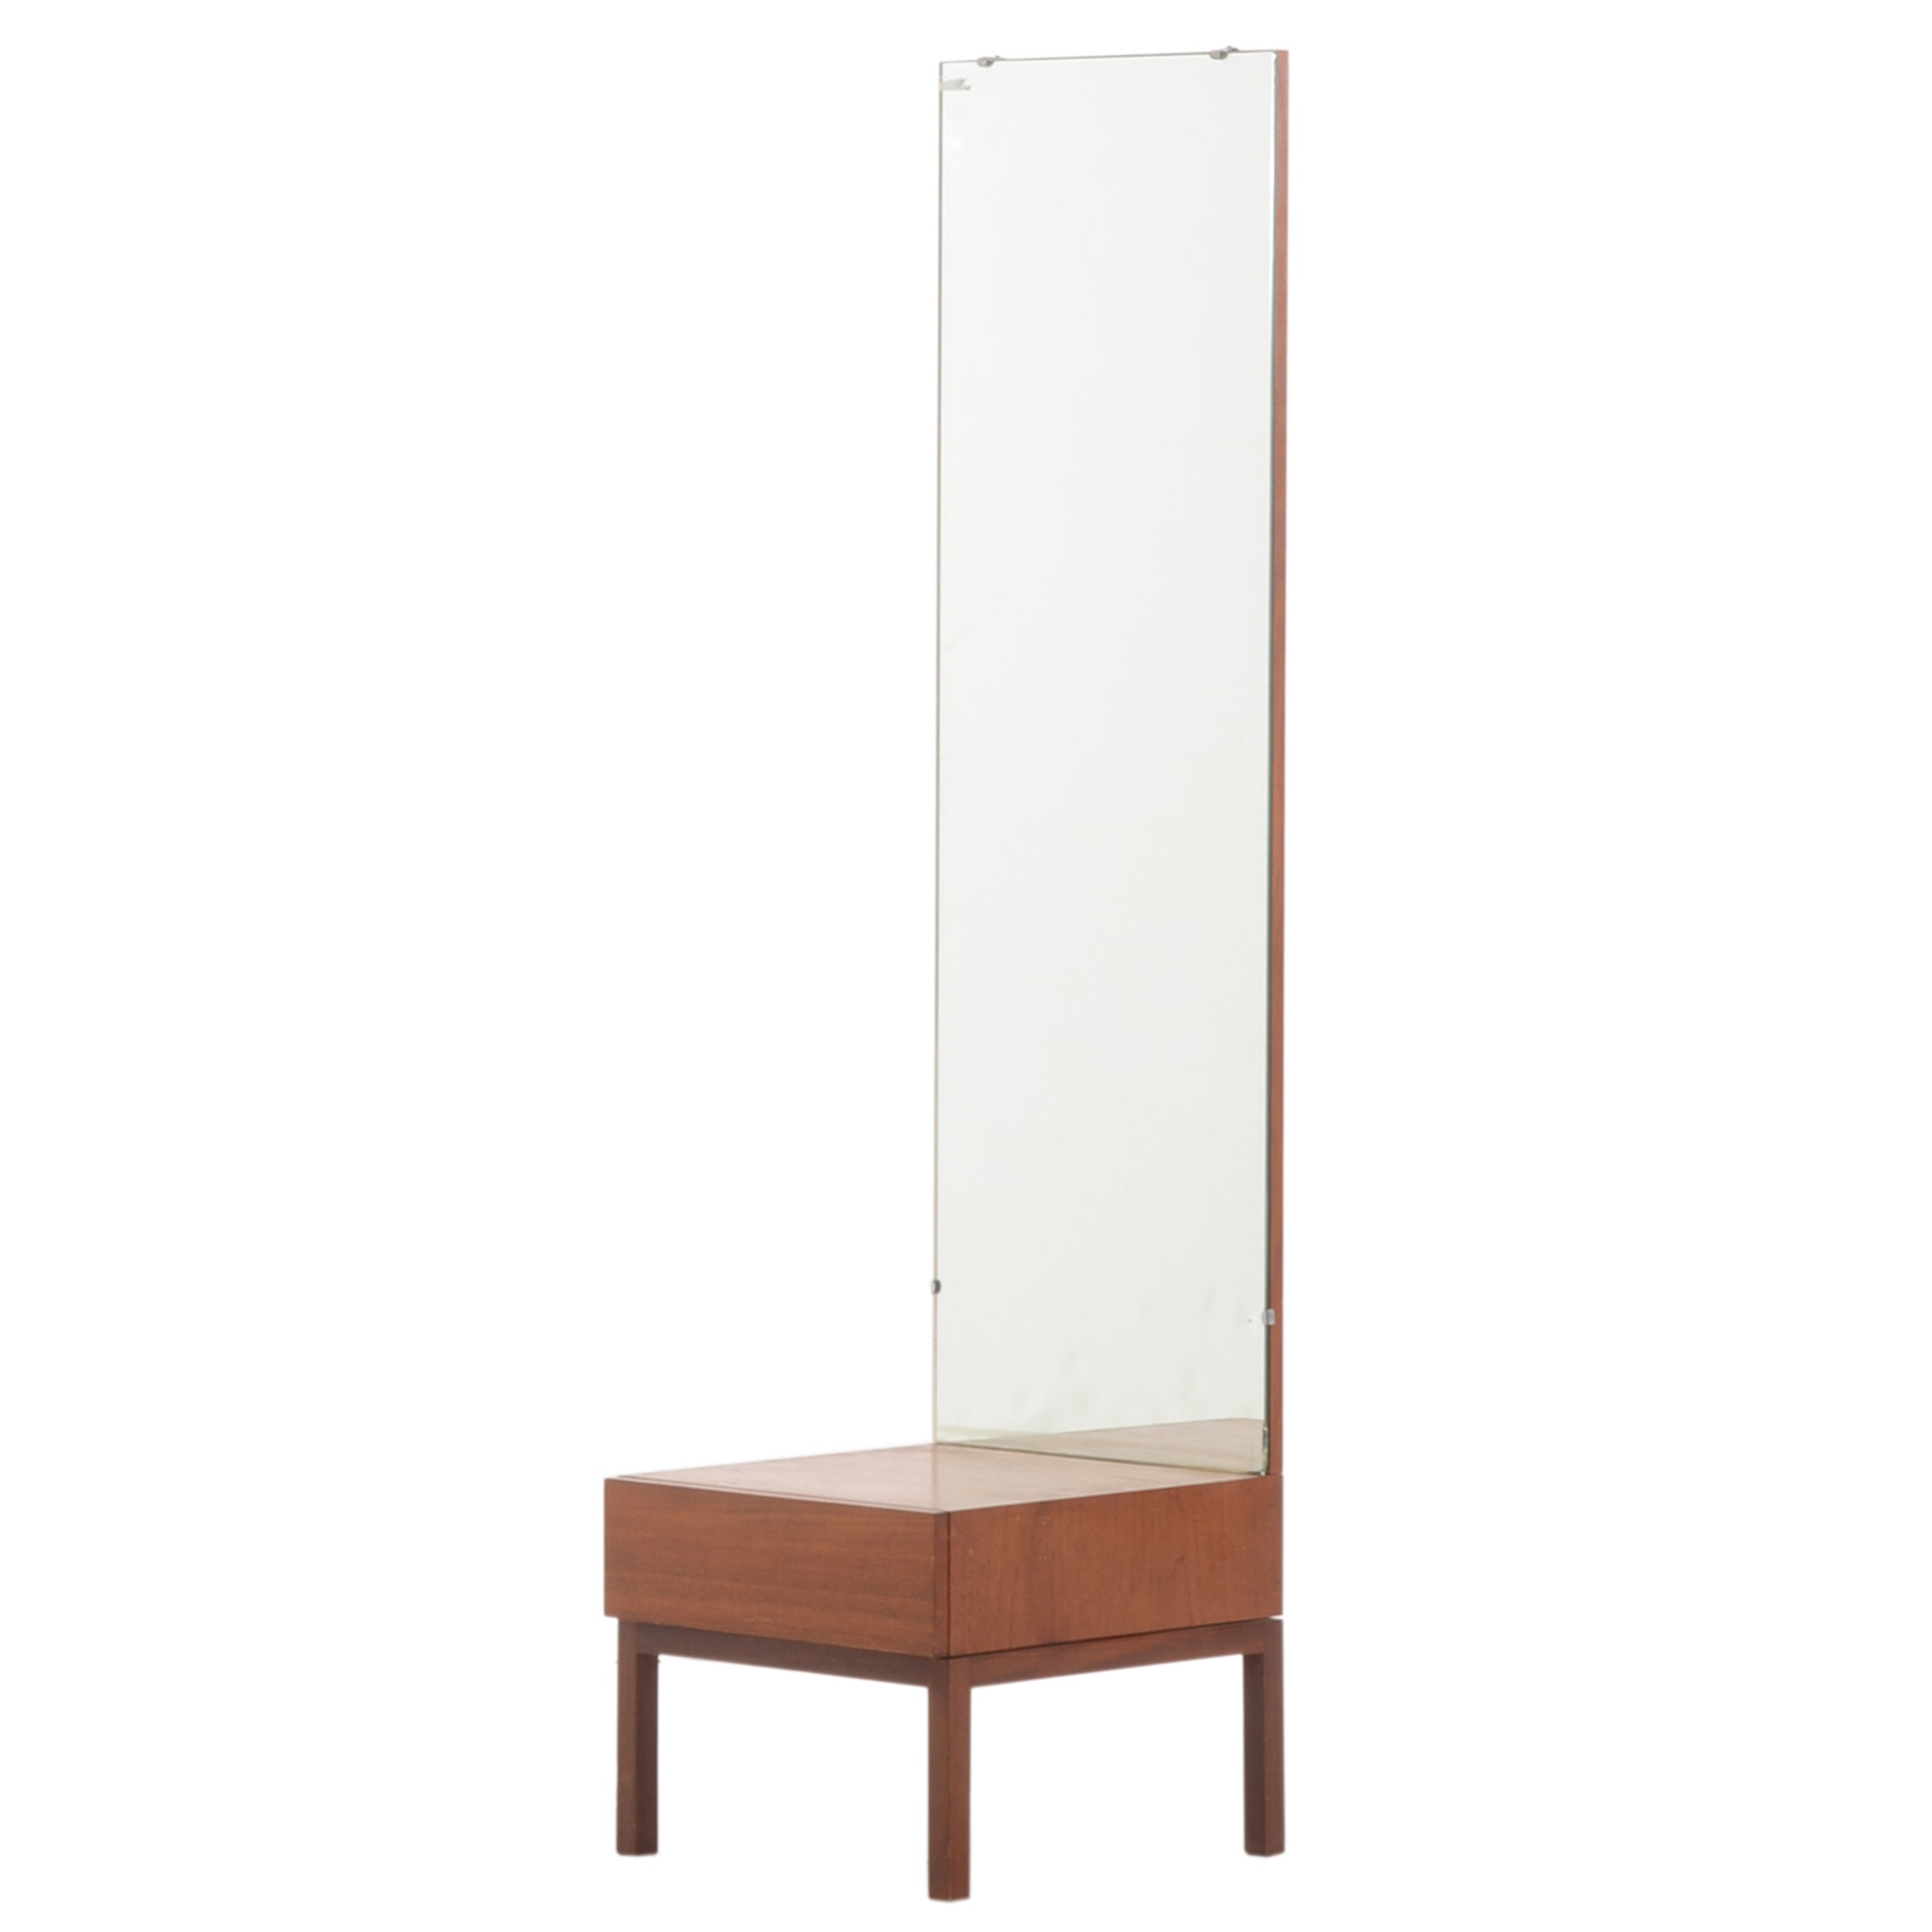 Danish Modern Teak Dressing Mirror